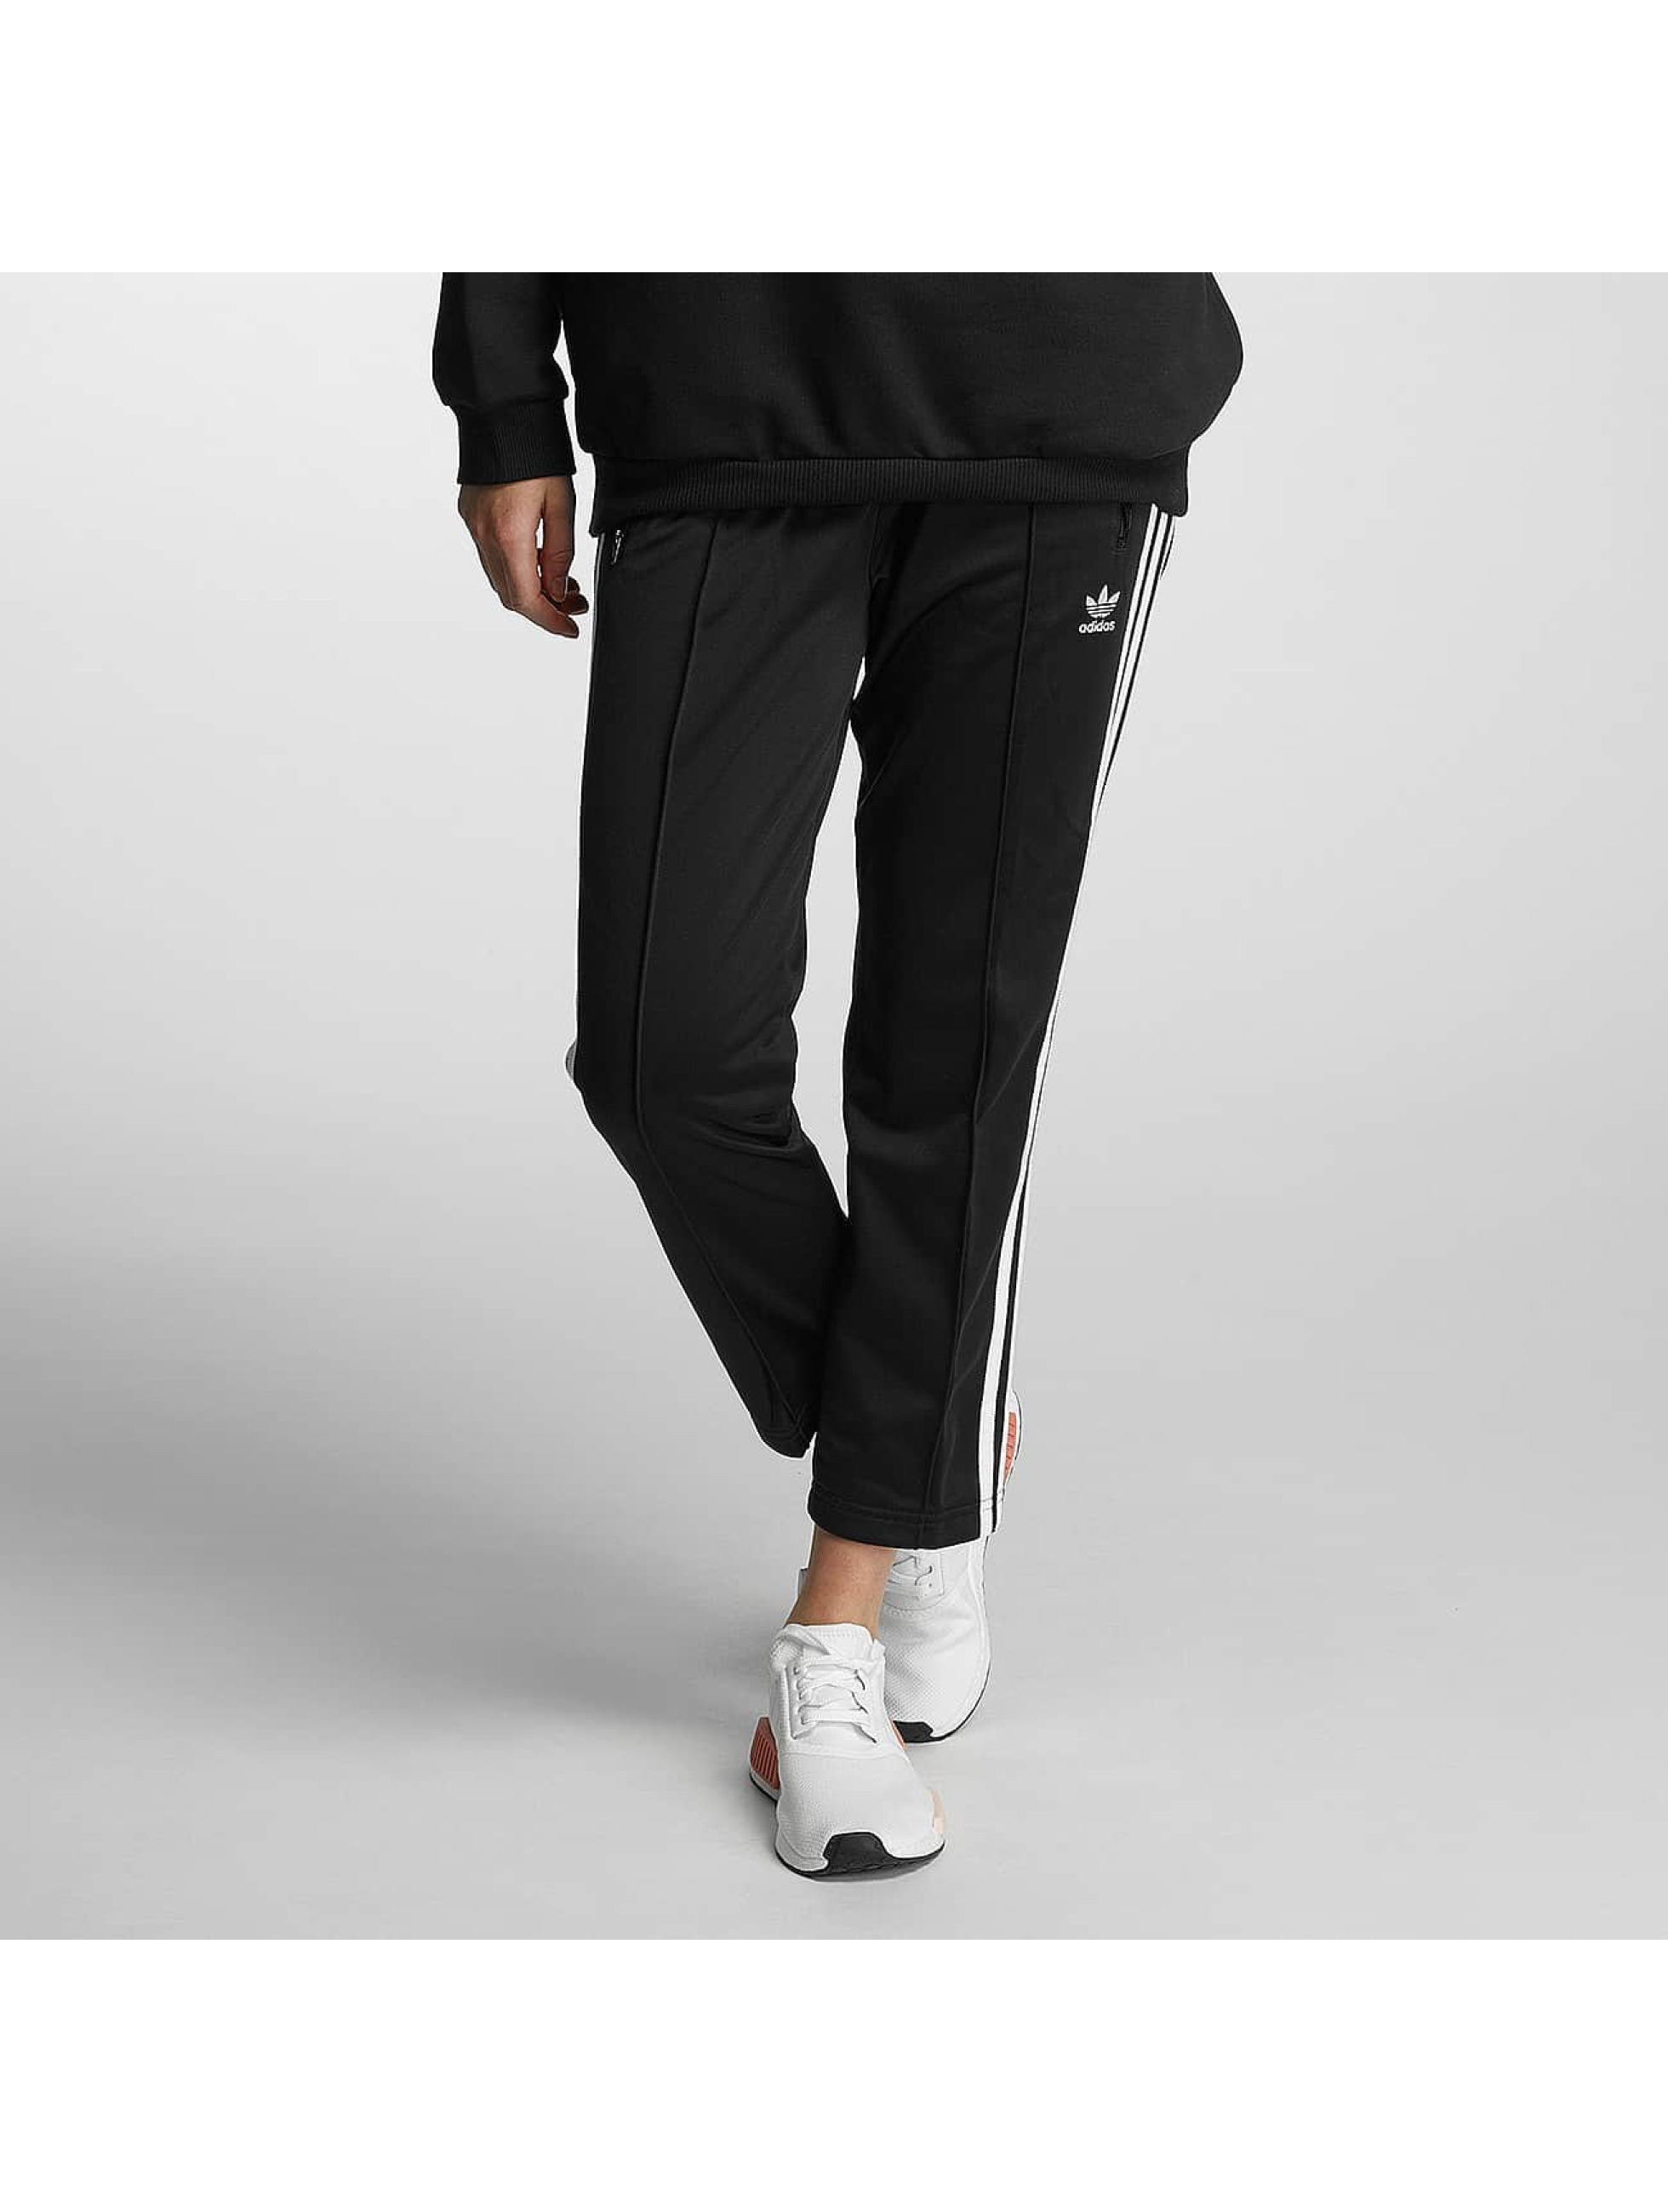 adidas originals Jogginghose Cigarette schwarz